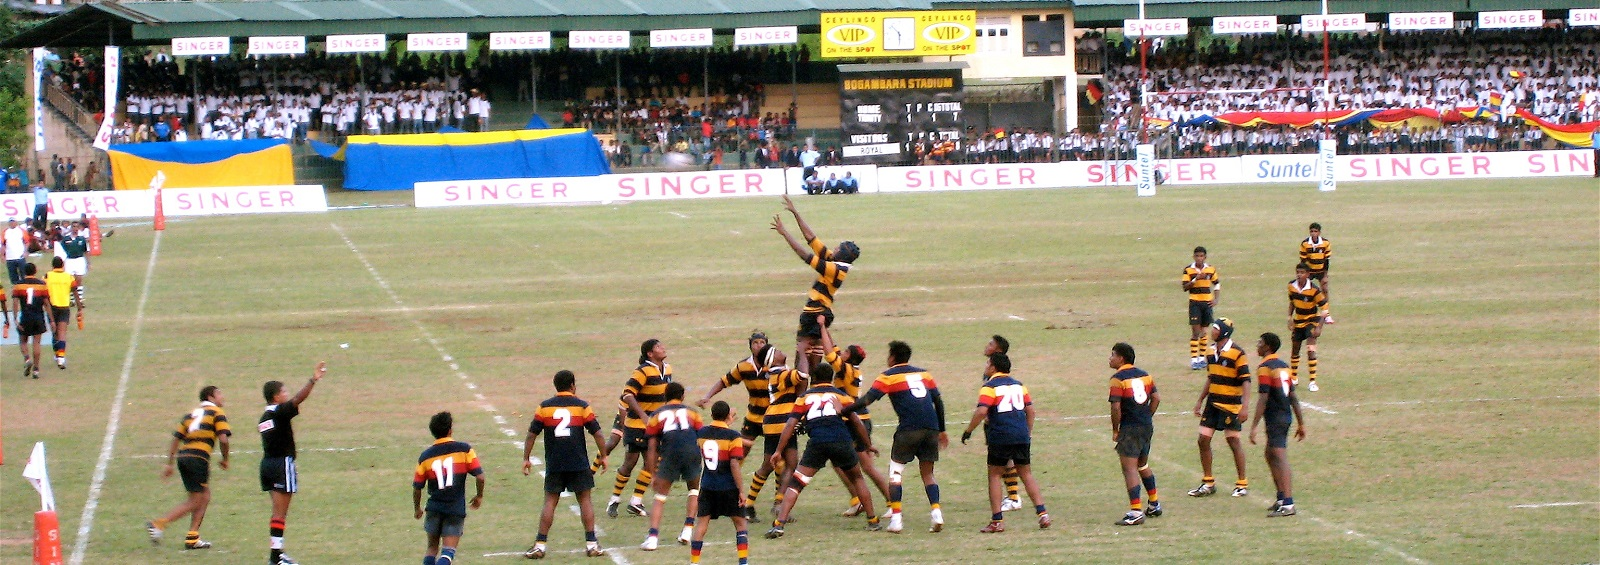 Rugby at Kandy's Bogambara Stadium (Photo courtesy Flikr user Isuru Senevi)